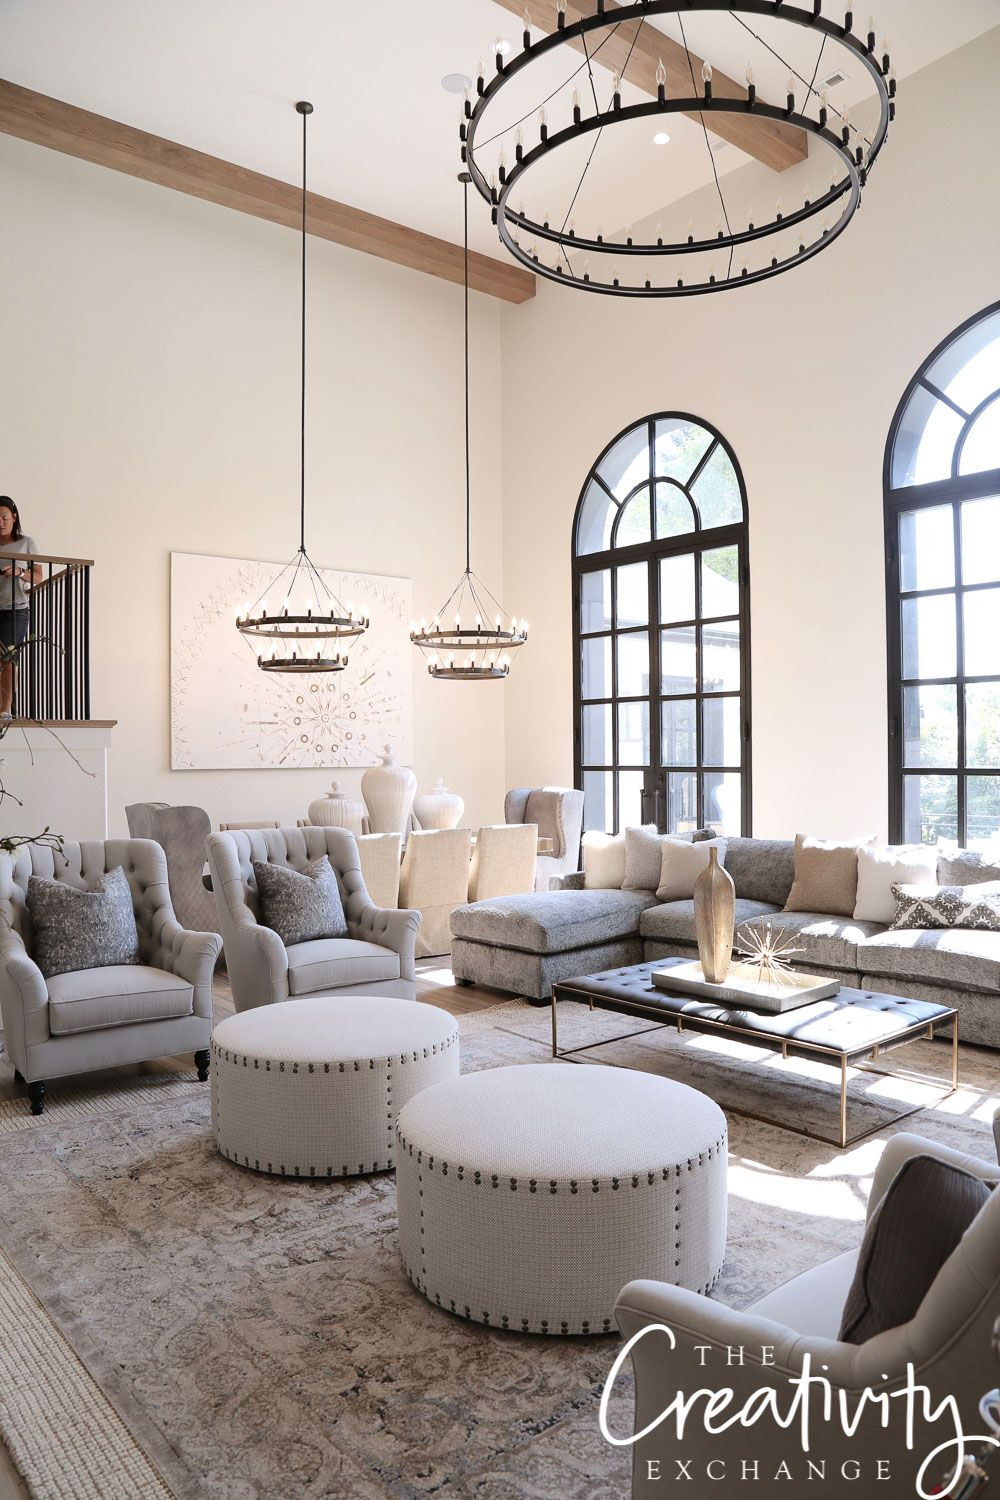 modern french country interior design on modern european chateau home tour french country living room country house decor french style homes modern european chateau home tour